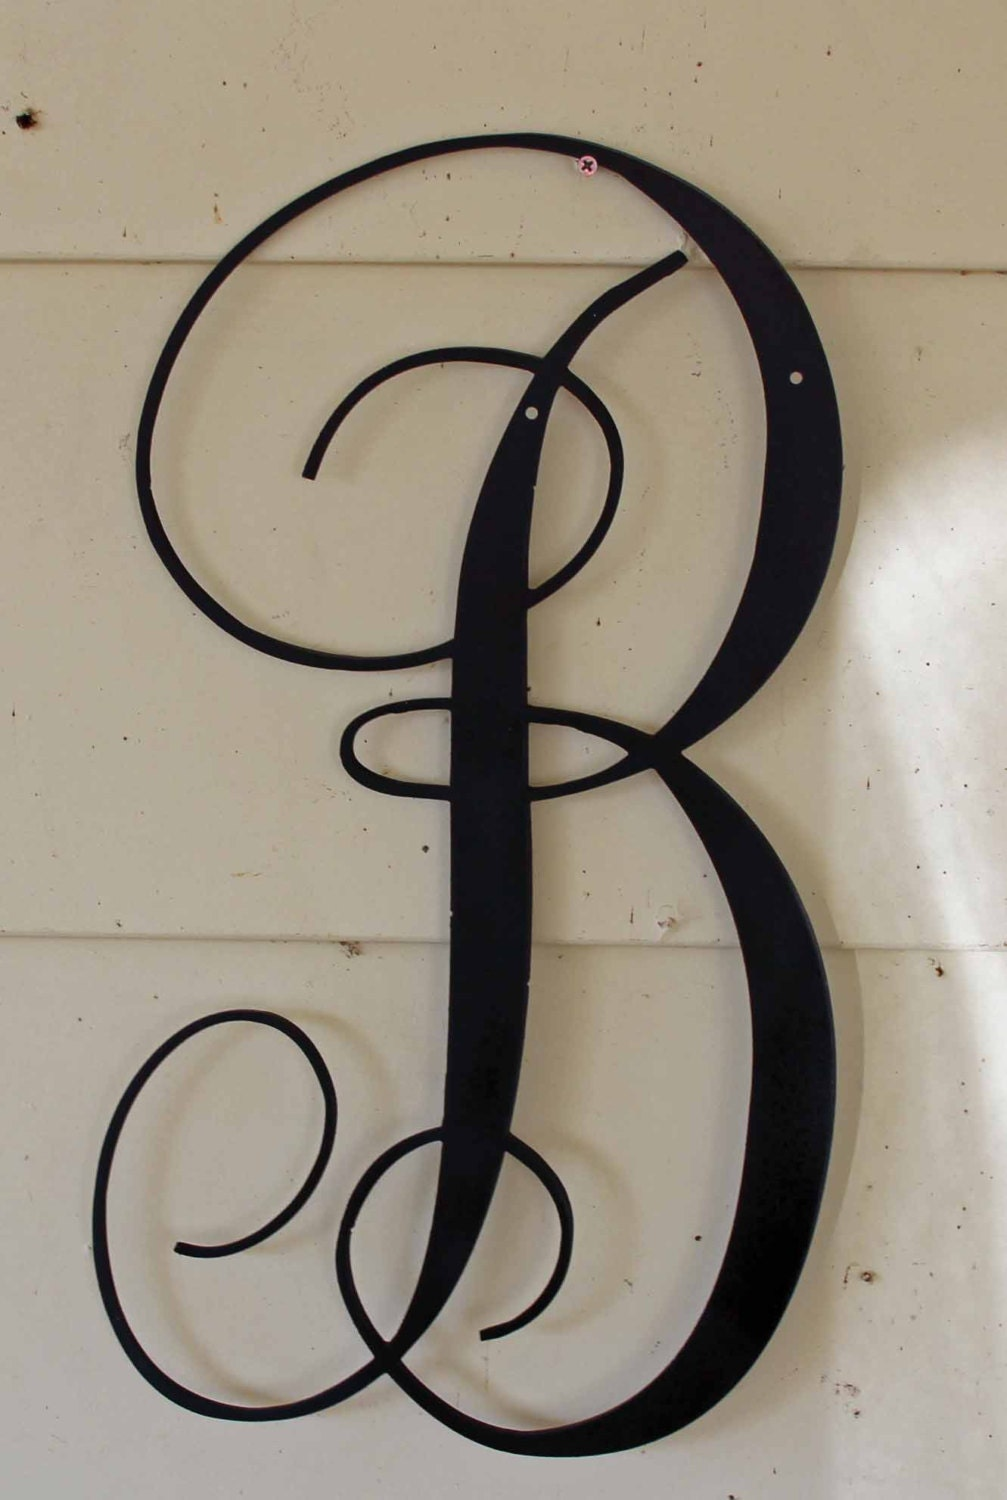 Metal Letter Art 22 Inch Black Script Metal Letter B Door Or Wall Hanging